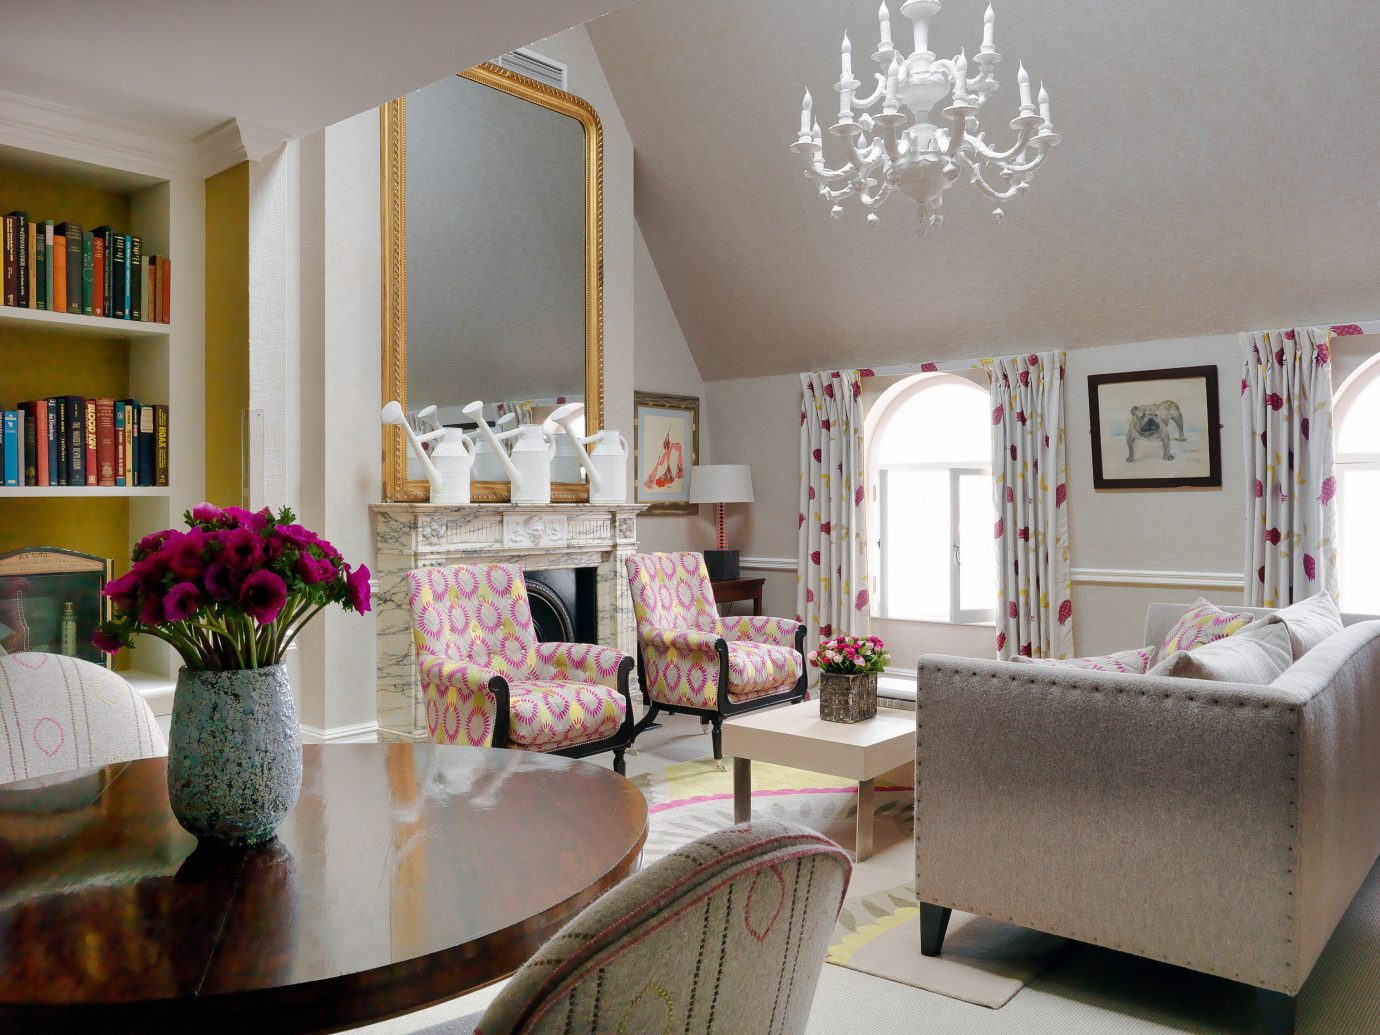 Boutique Hotels London Romantic Hotels indoor wall living room room Living interior design home ceiling furniture window real estate interior designer estate house dining room table decor decorated